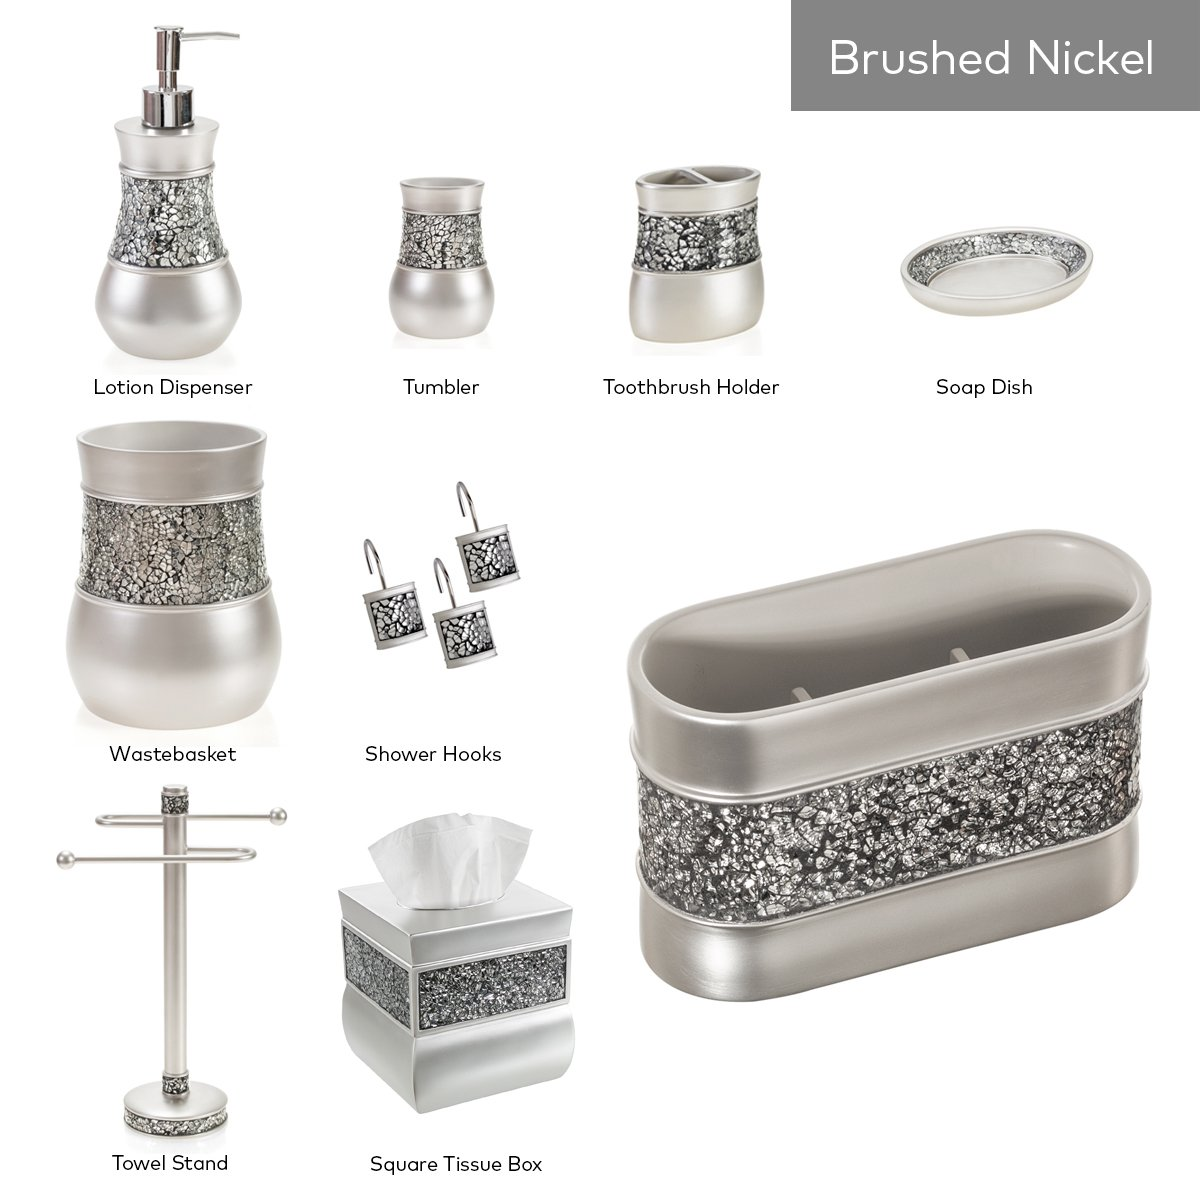 Nickel bathroom accessories - Amazon Com Creative Scents Brushed Nickel Bathroom Trash Can 7 75 X 7 75 X 10 Decorative Wastebasket Durable Waste Paper Baskets Space Friendly Bath